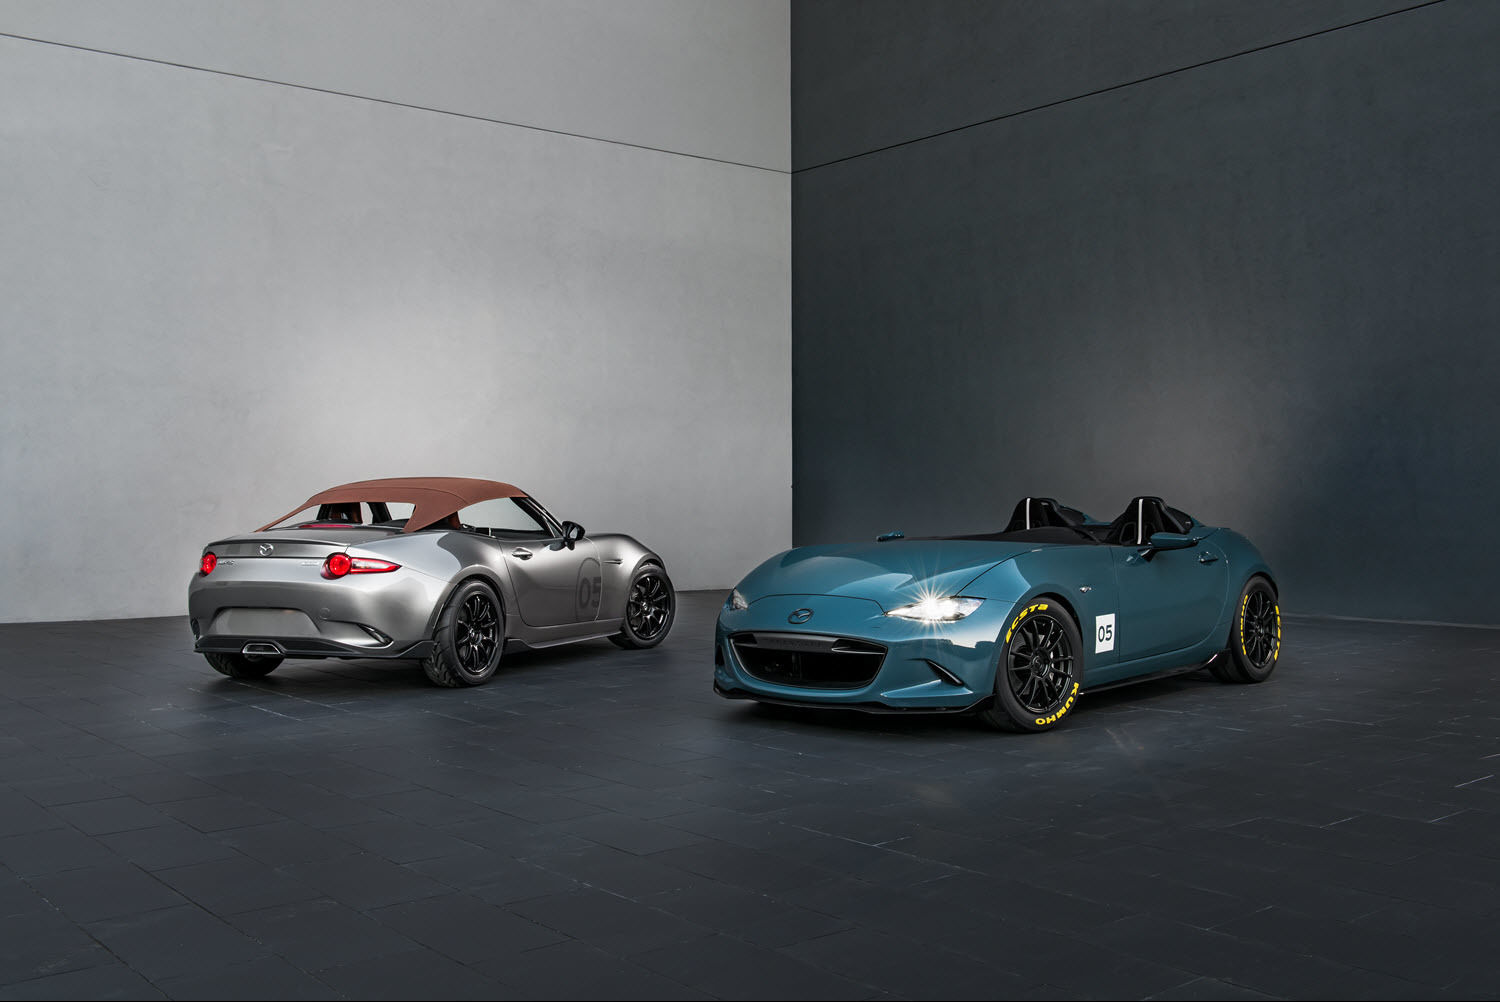 Mazda shows two specials MX-5 at the SEMA Show